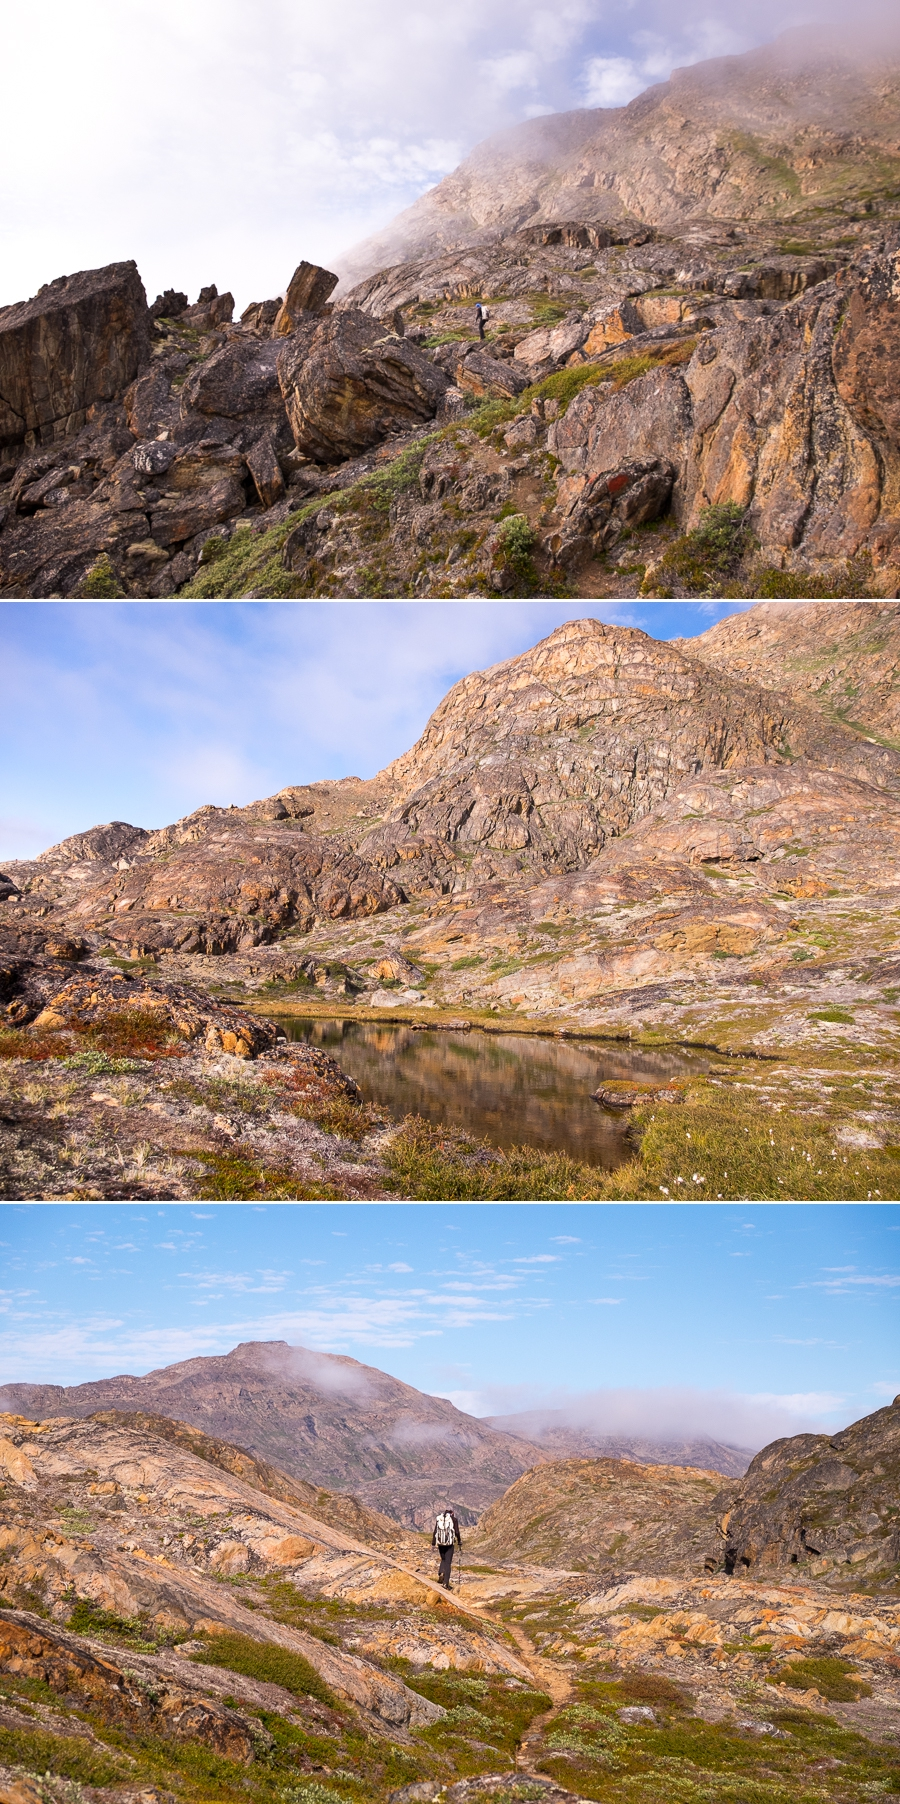 Images of the final parts of the trail between Assaqutaq and Sisimiut - once the sun had come out. West Greenland